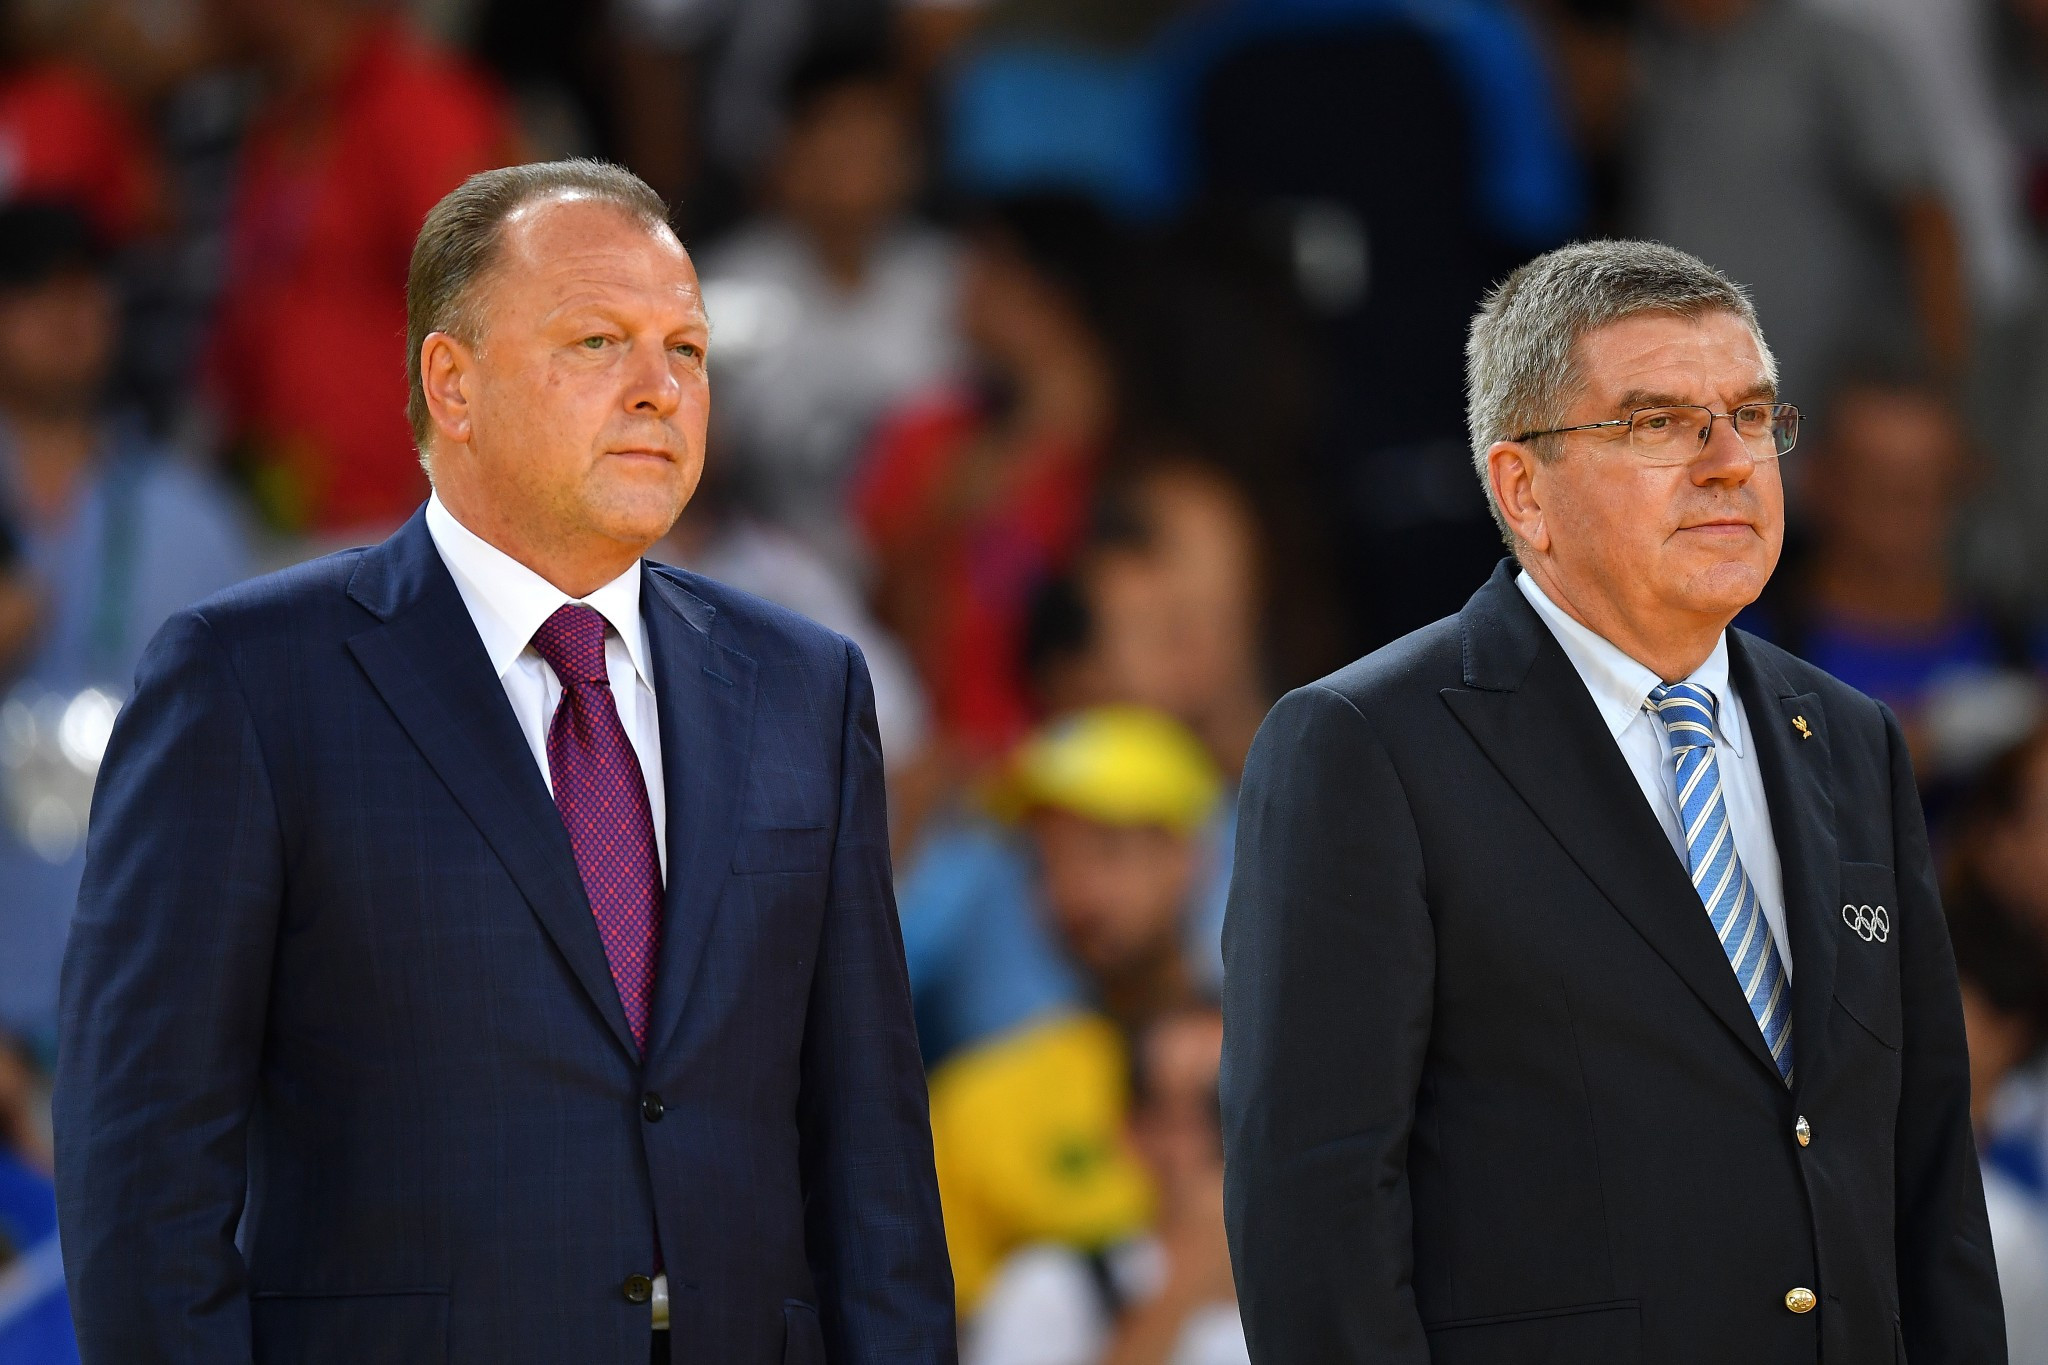 Thomas Bach acted ruthlessly when Marius Vizer, left, criticised him while leading SportAccord ©Getty Images